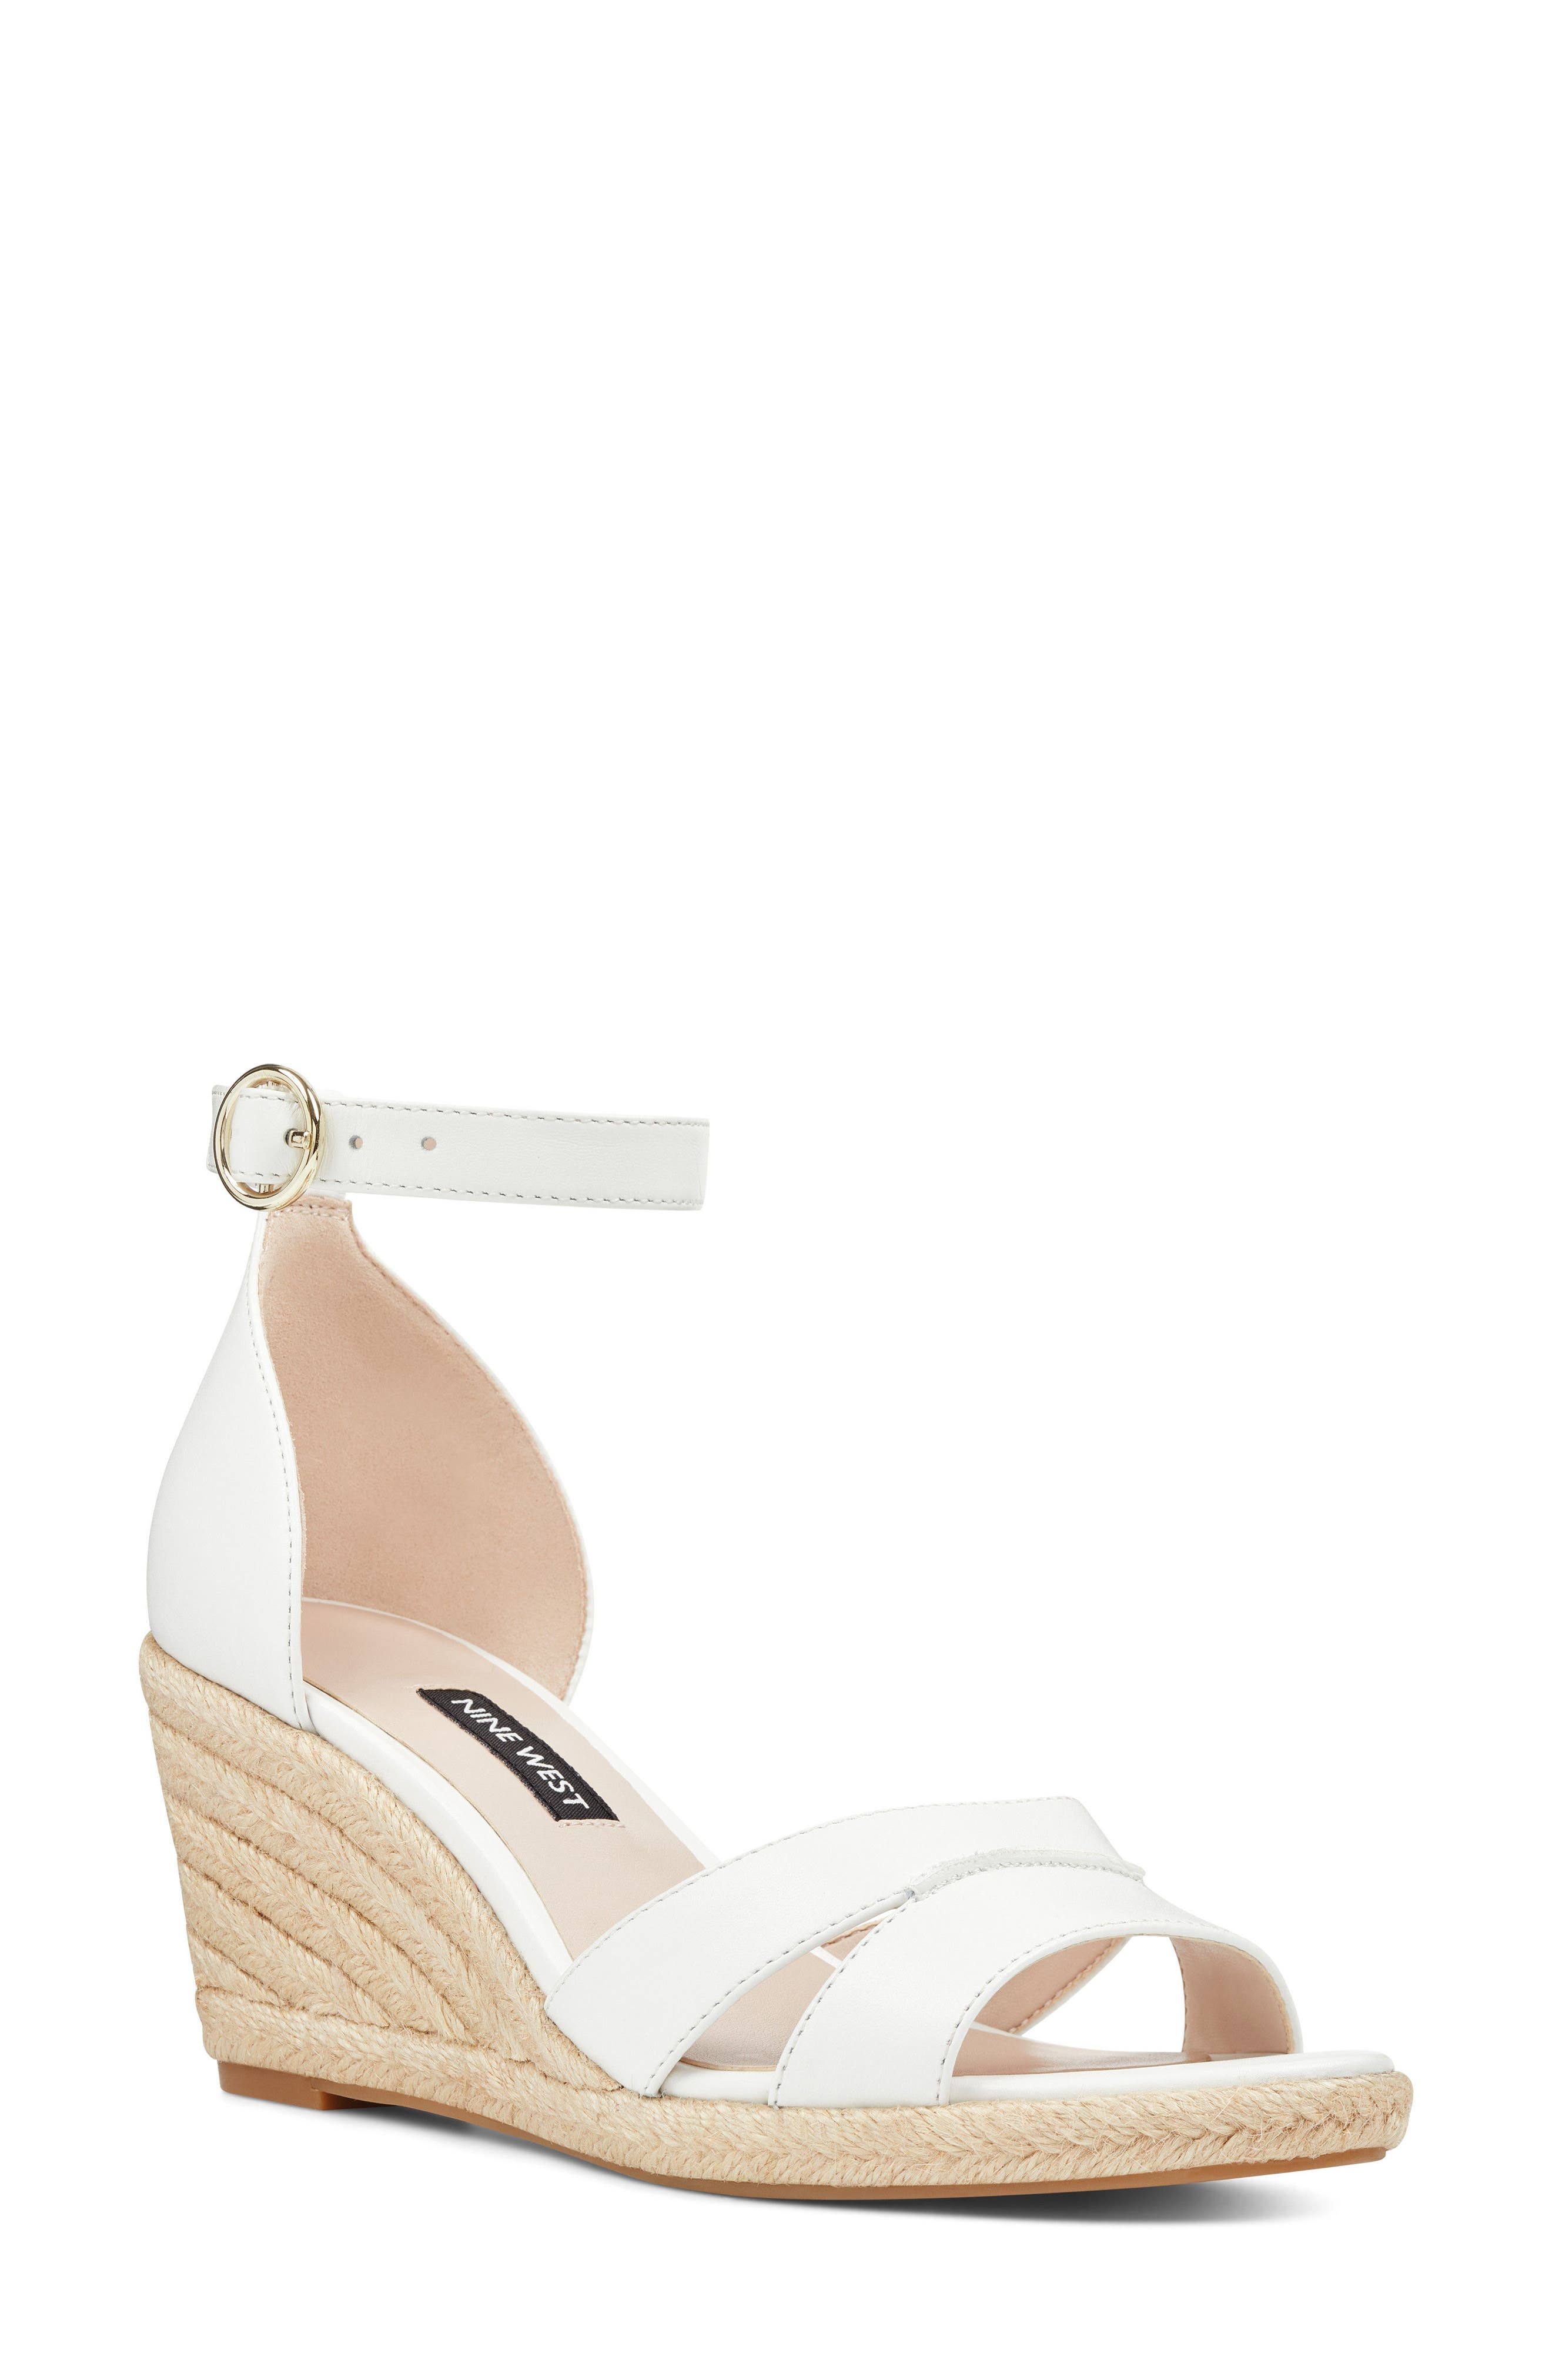 Jeranna Espadrille Wedge Sandal,                         Main,                         color, WHITE LEATHER